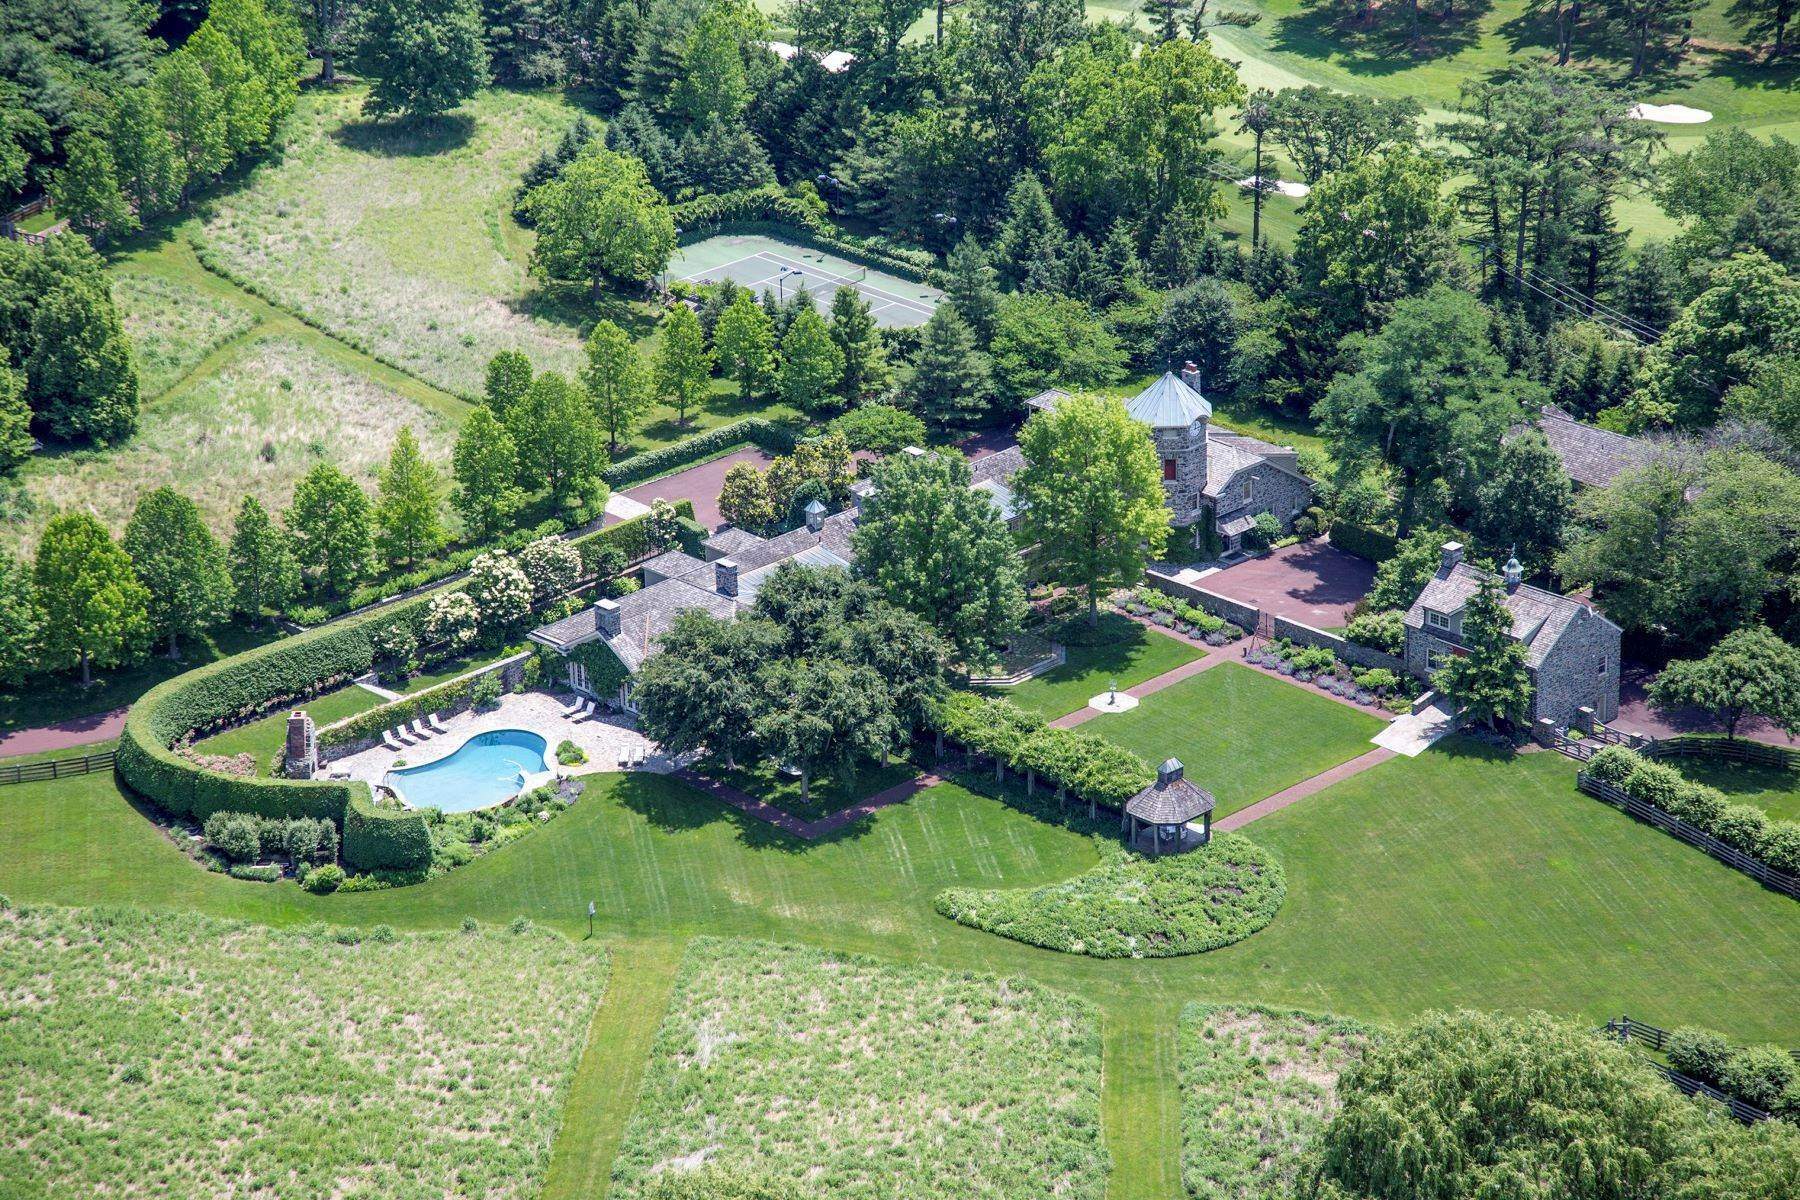 3. Single Family Homes for Sale at Albermarle Compound 770 GODFREY RD Villanova, Pennsylvania 19085 United States